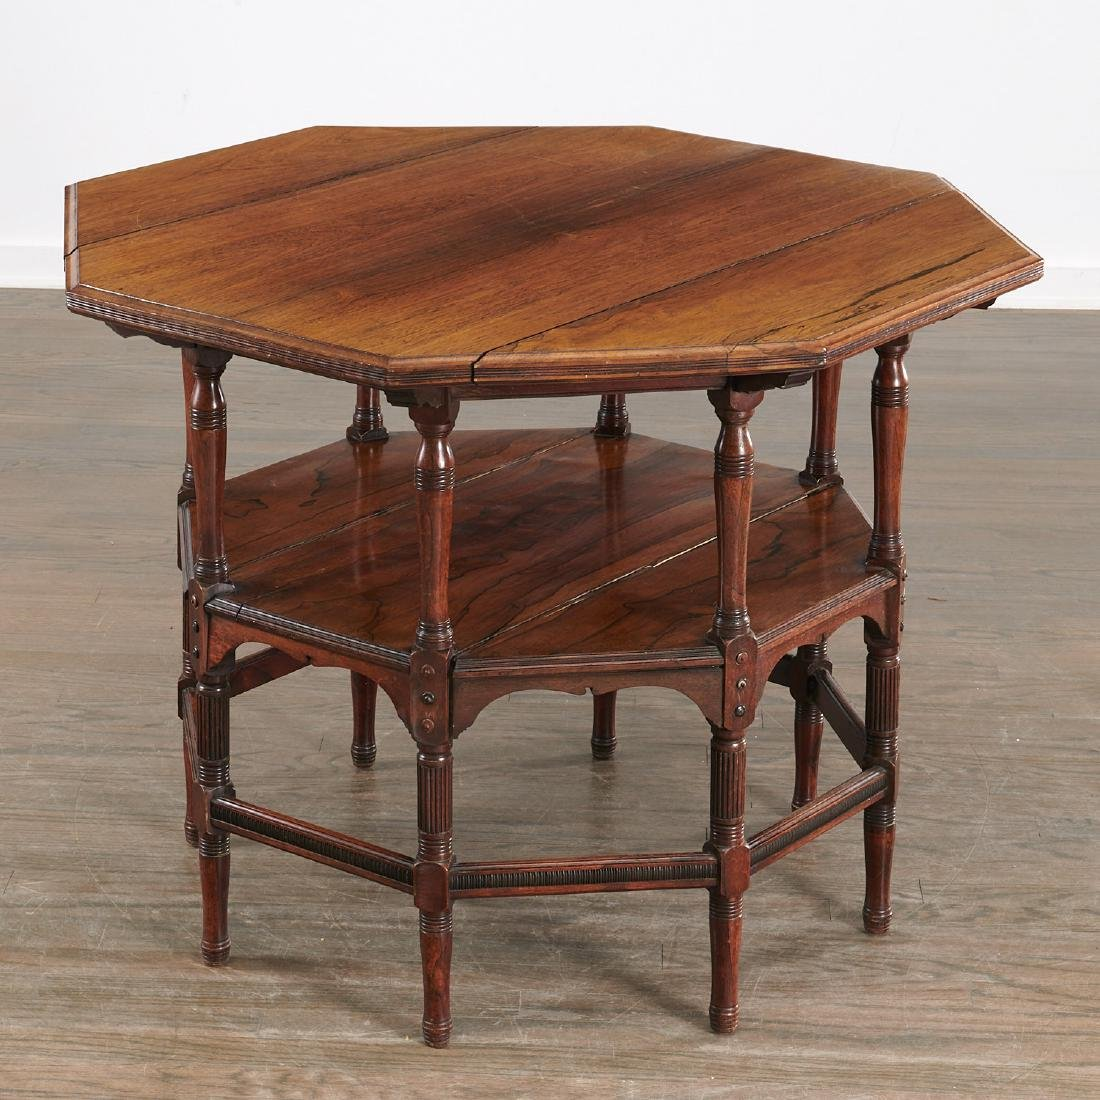 Nice Aesthetic Movement octagonal center table